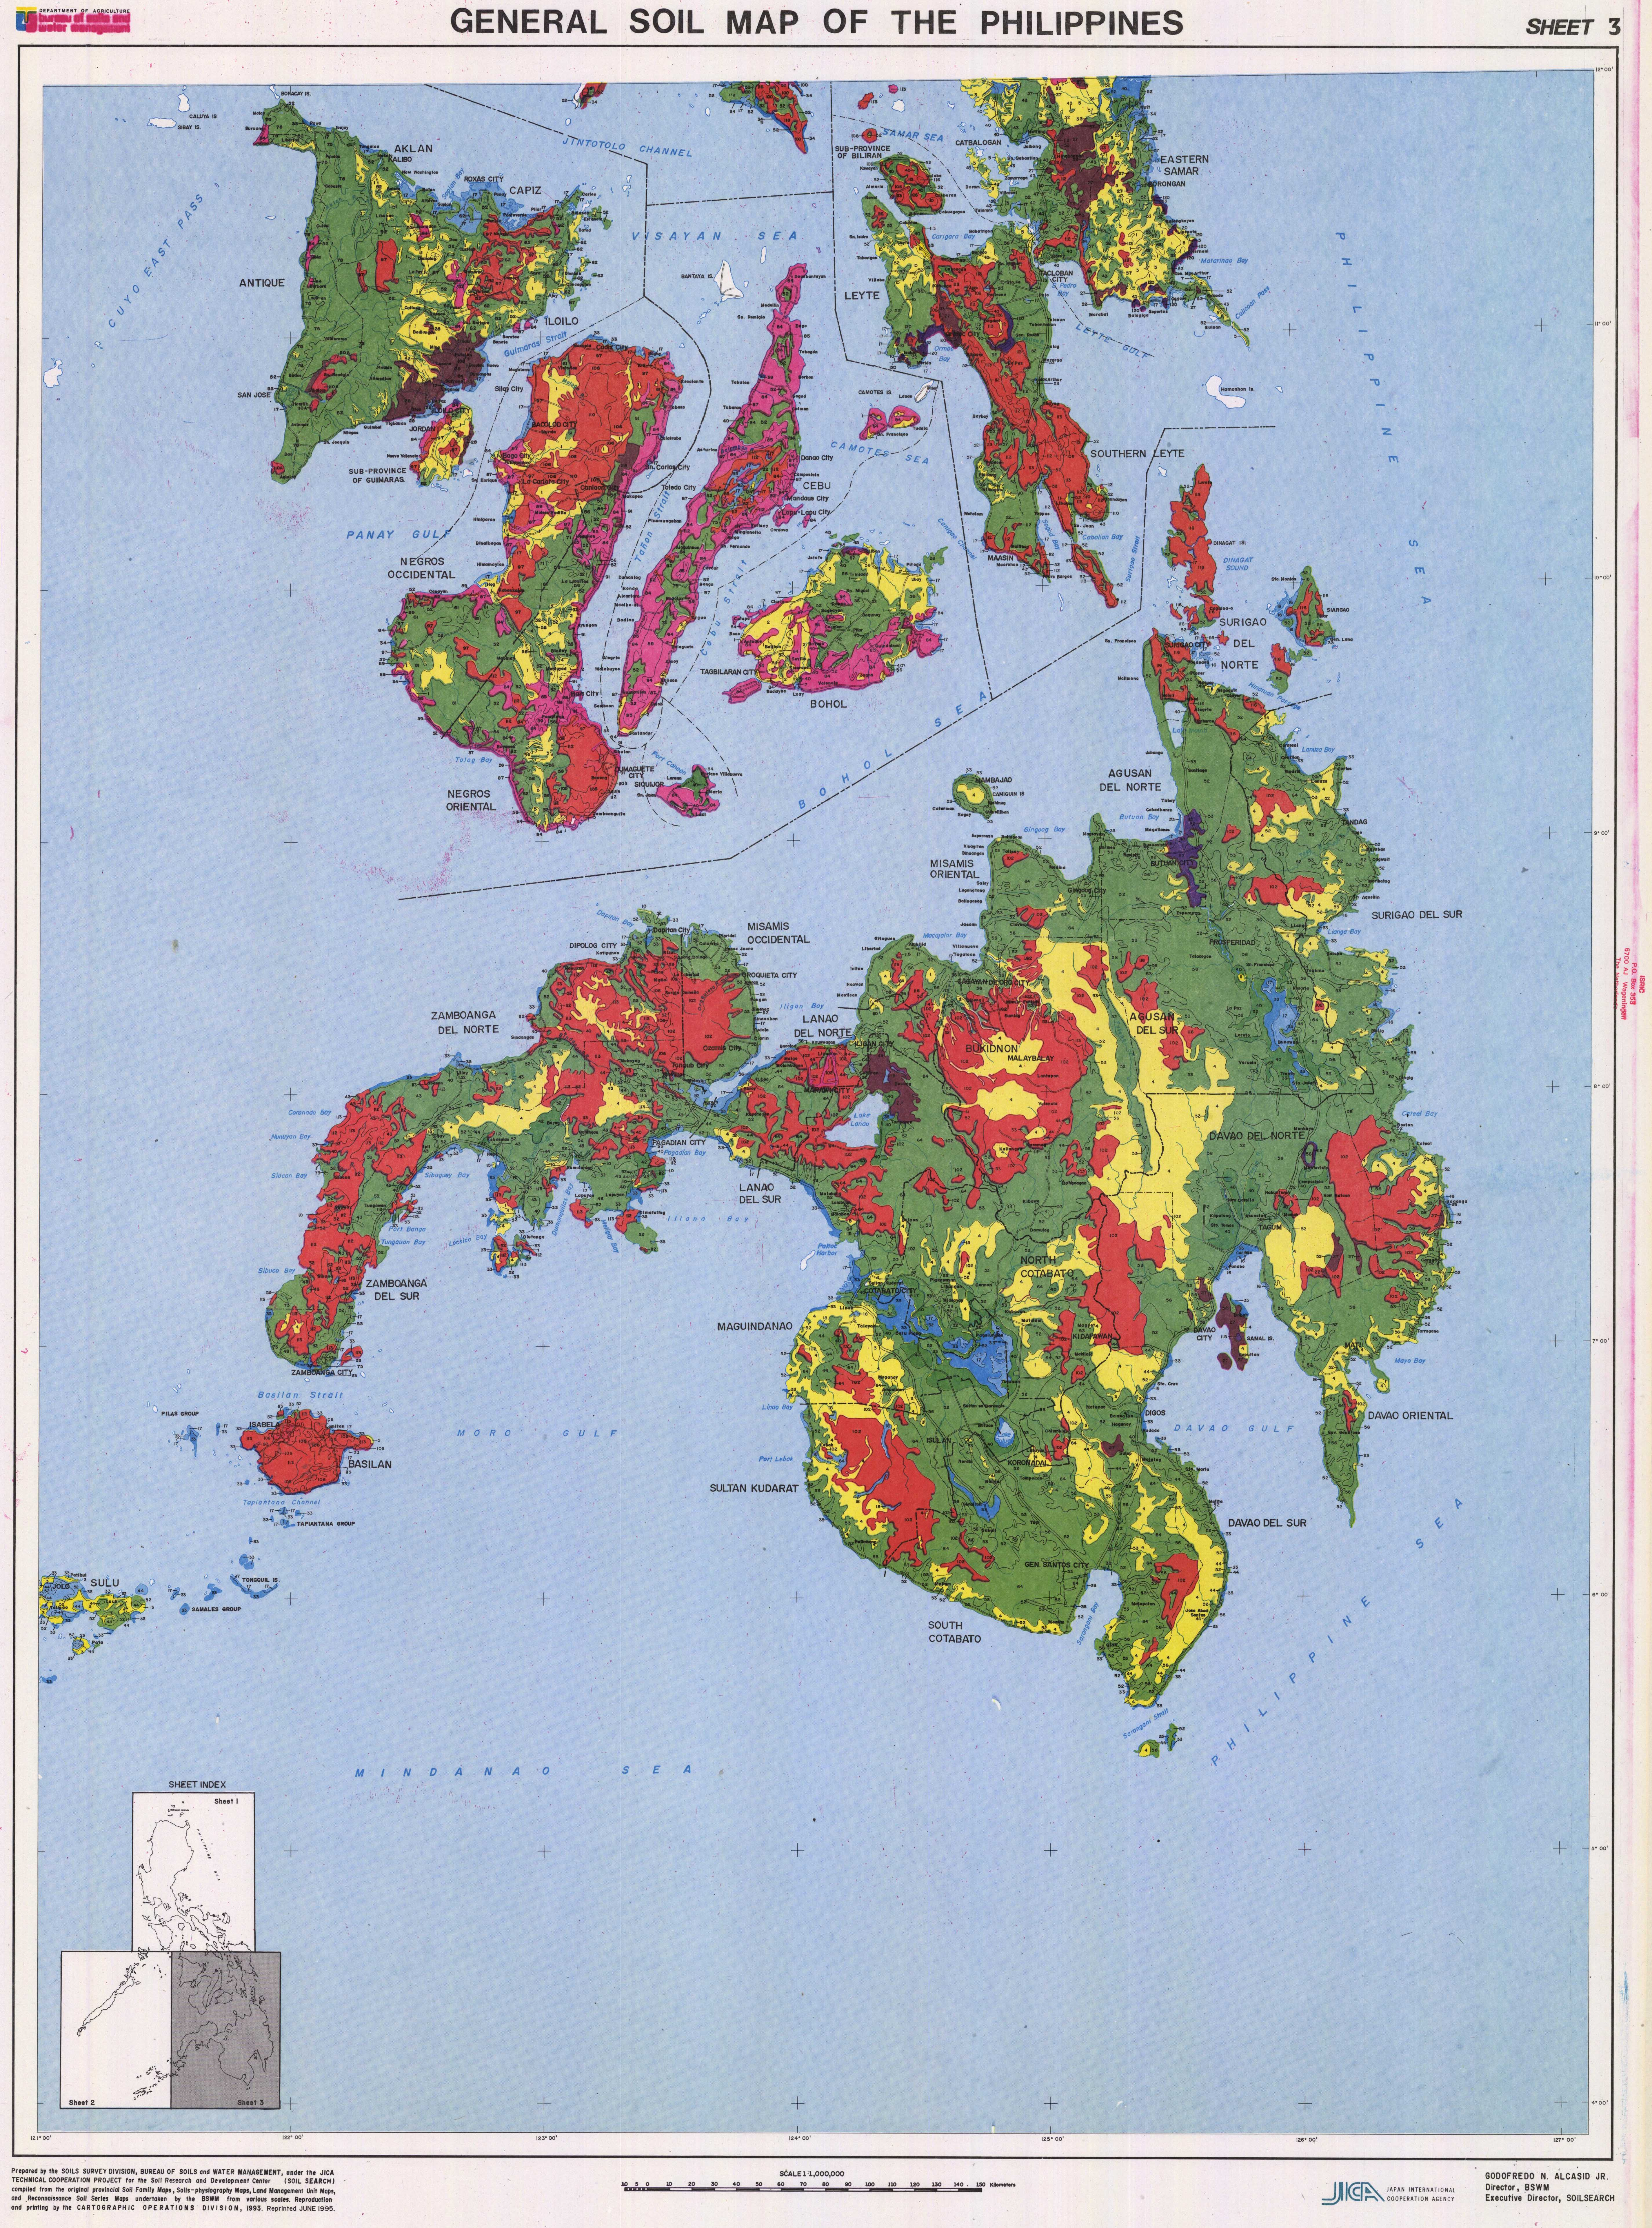 General Soil Map of the Philippines Sheet 3  ESDAC  European